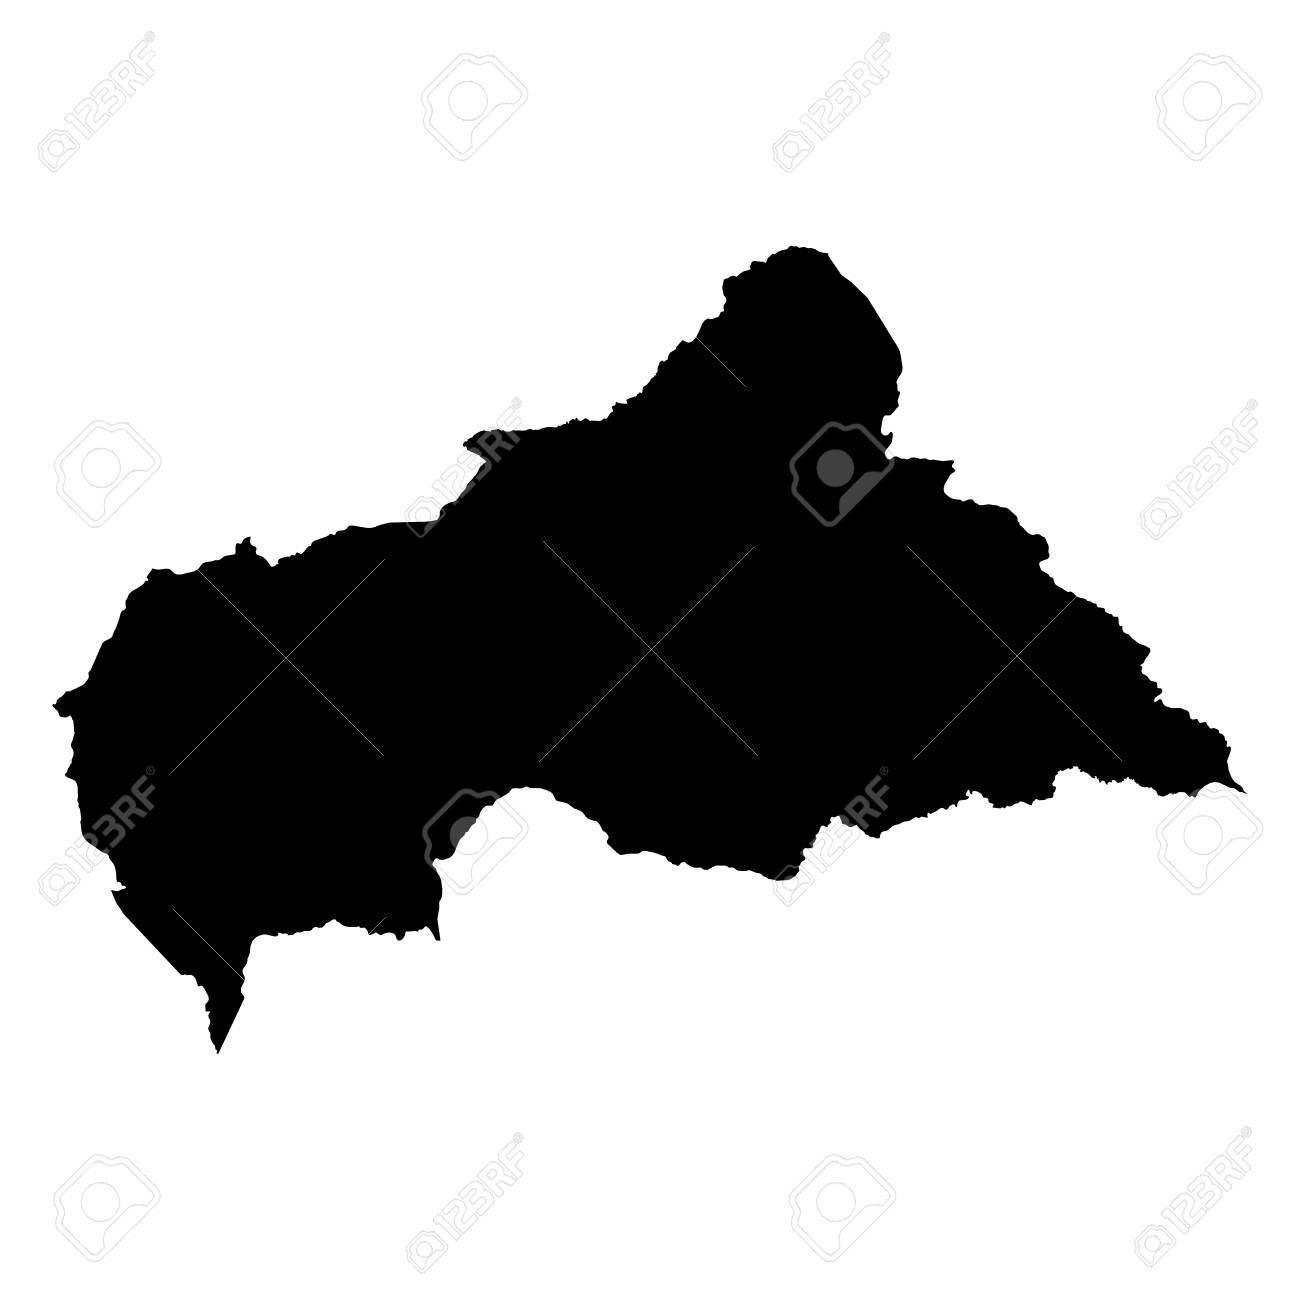 Central African Republic Black Silhouette Map Outline Isolated